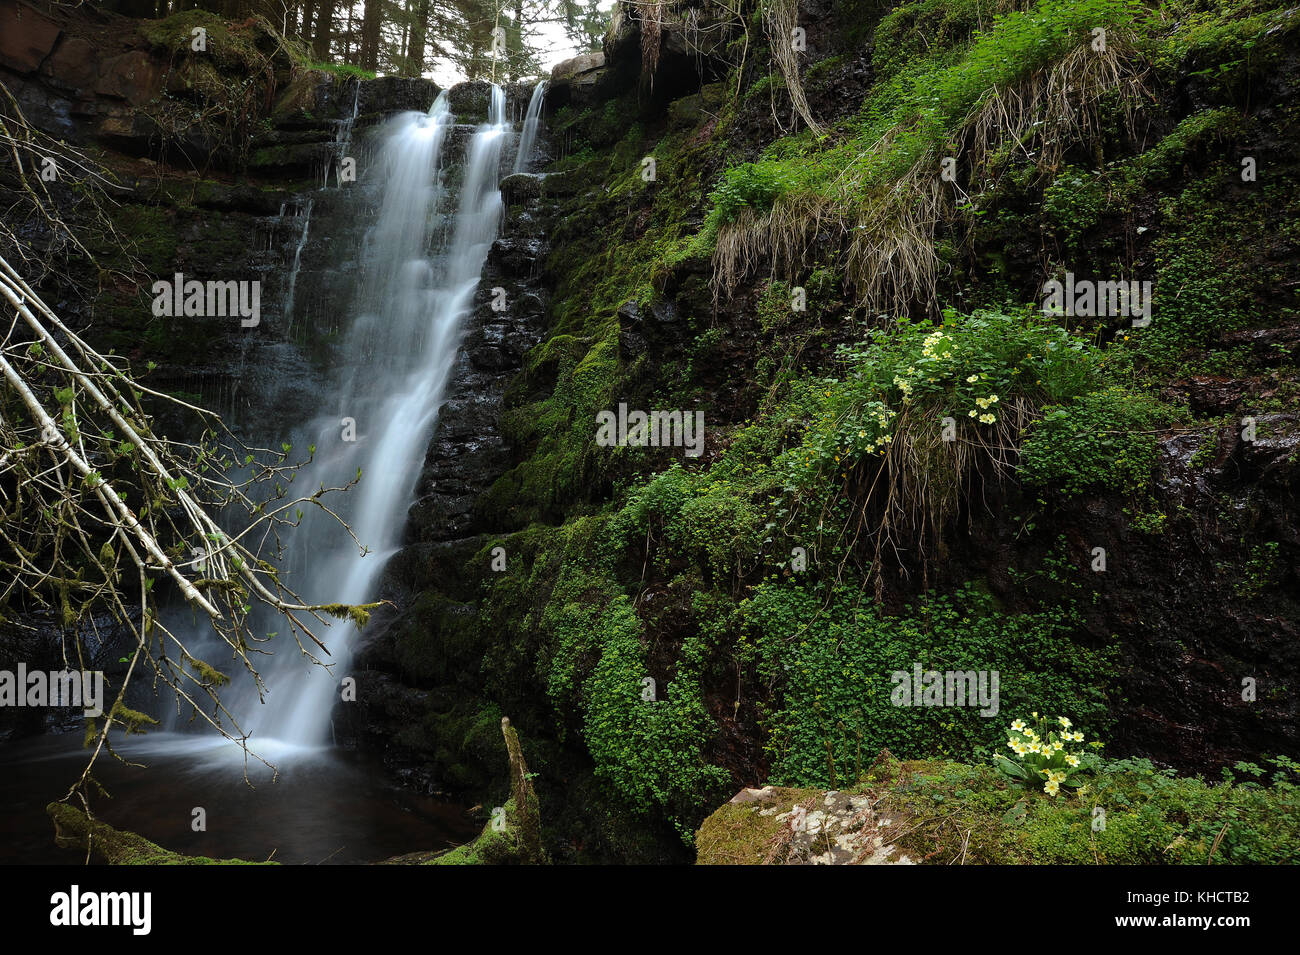 The third waterfall on the Nant Bwrefwr between the car park and the Afon Caerfanell. - Stock Image